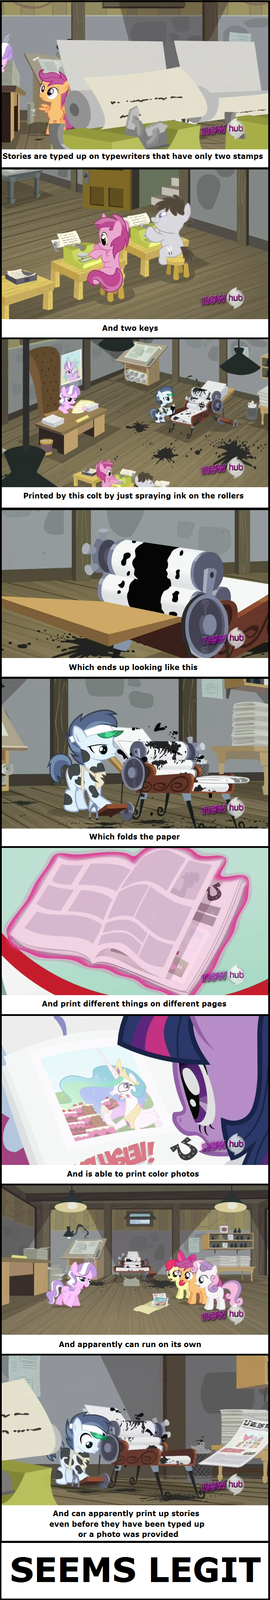 Newspapers, how do they work?